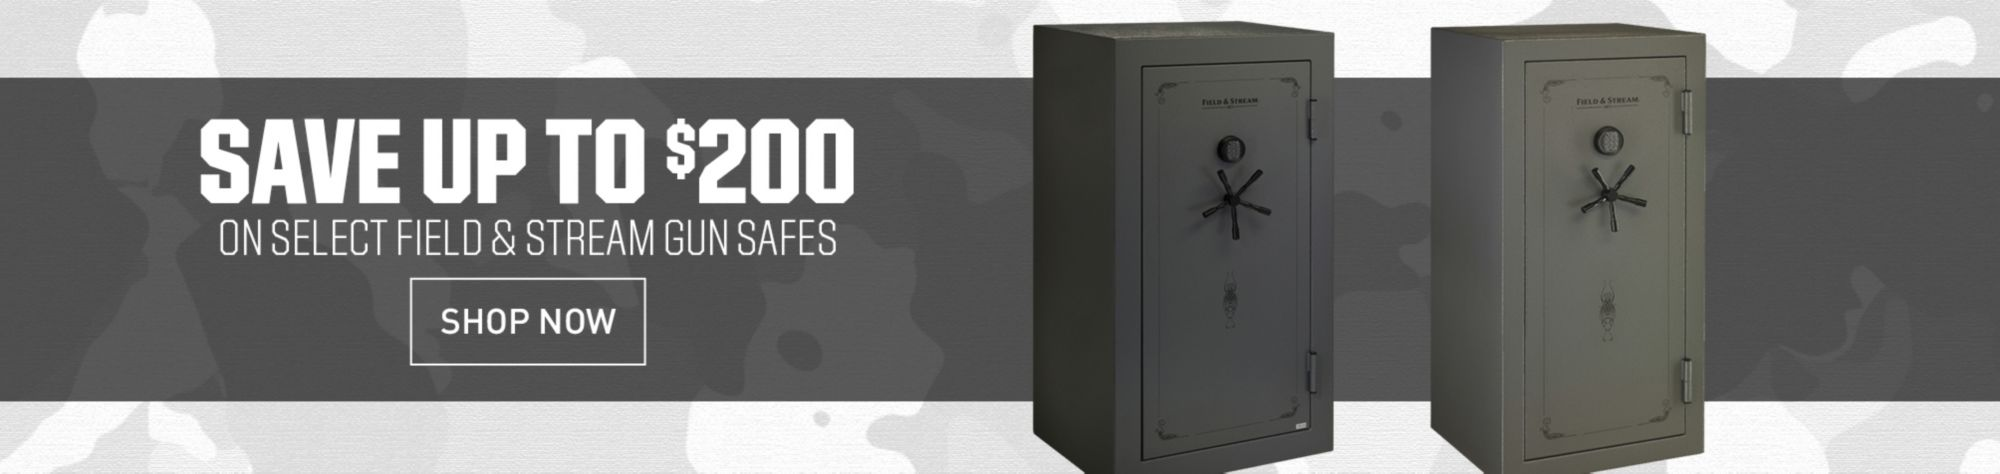 Field & Stream Gun Safes